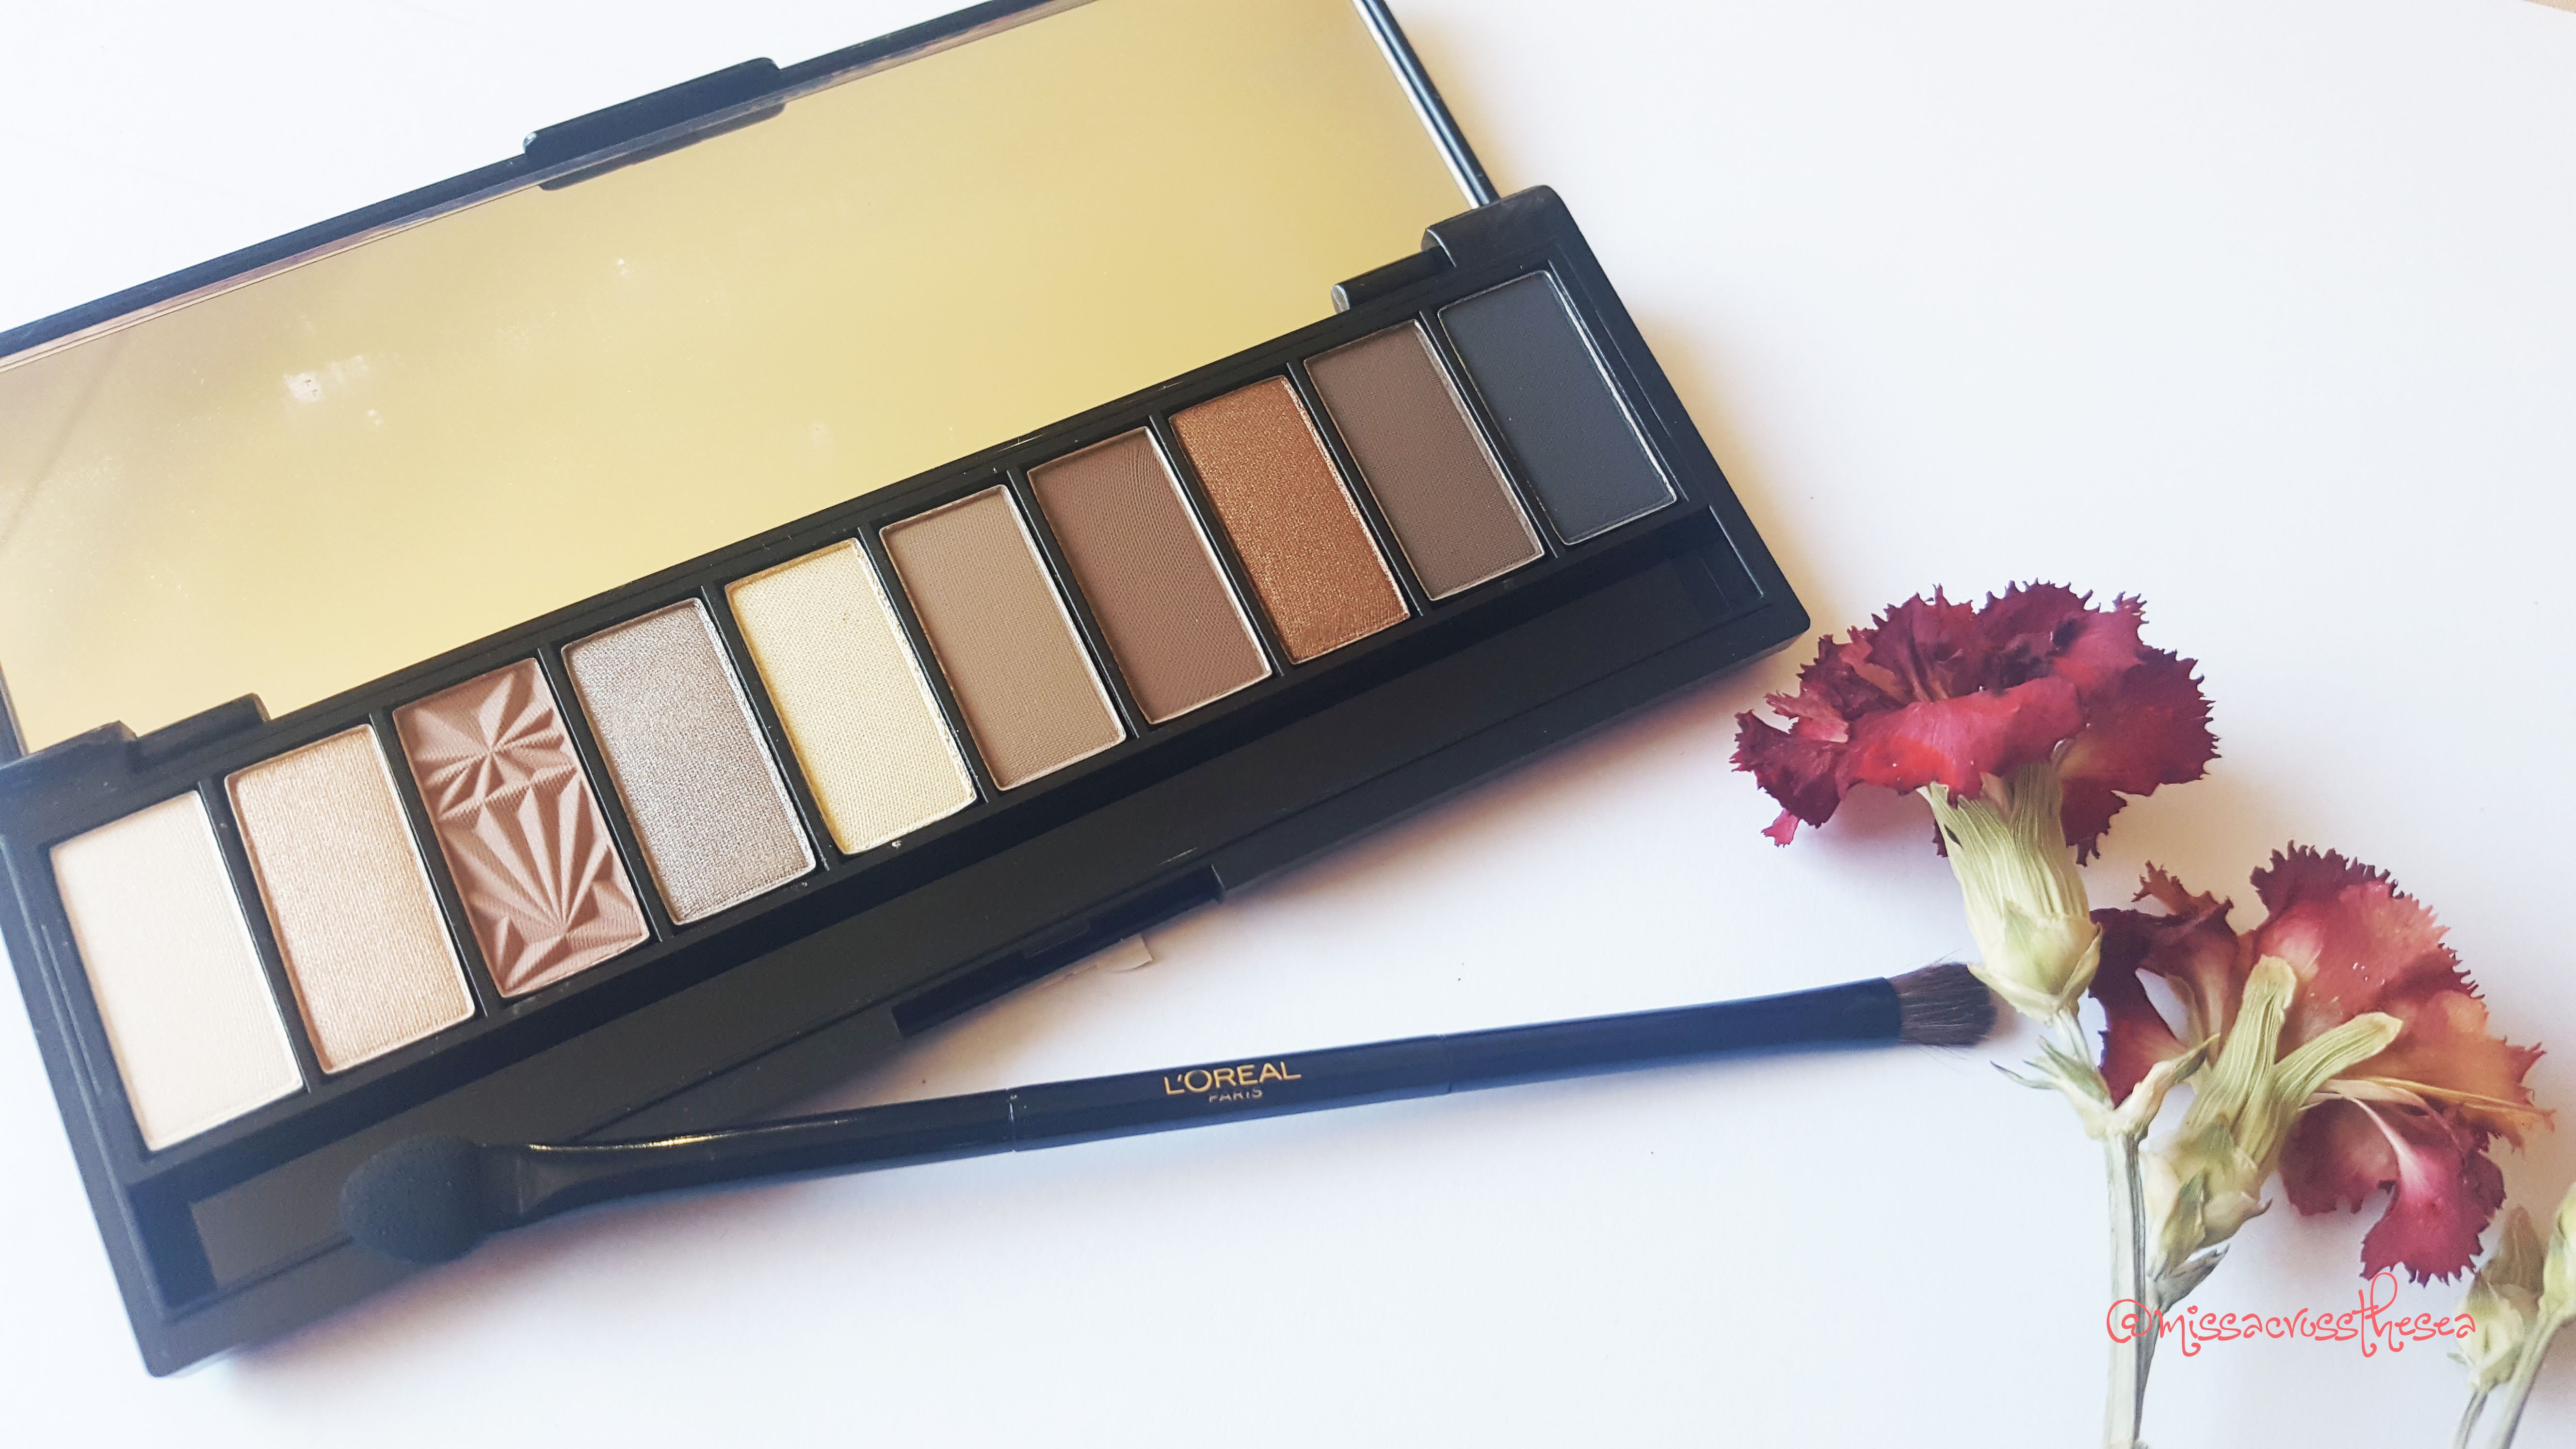 18 best new eyeshadow palettes 2021: From Charlotte